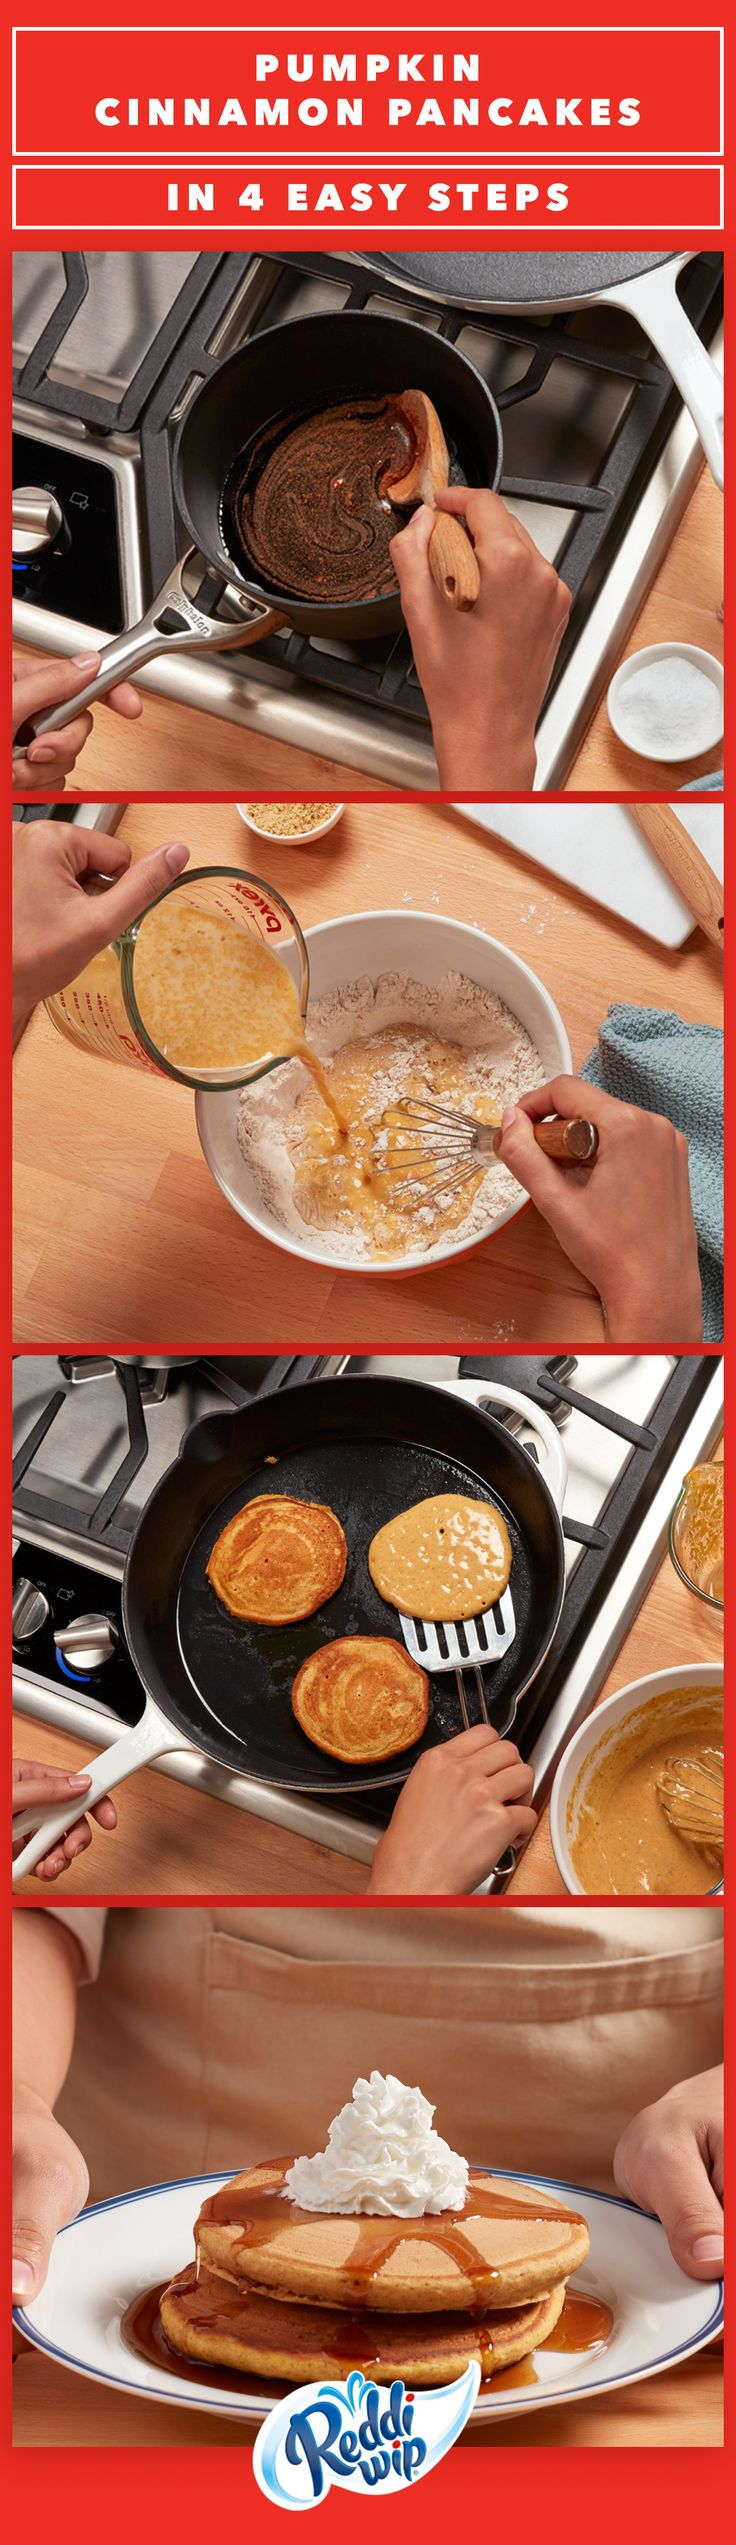 Sweeten up crisp autumn mornings with these irresistible Pumpkin Spice Pancakes. Drizzle with Cinnamon Syrup and top with a generous Reddi-wip whoosh to secure your place as everyone's favorite person. All the flavors of fall, all in just four easy steps!